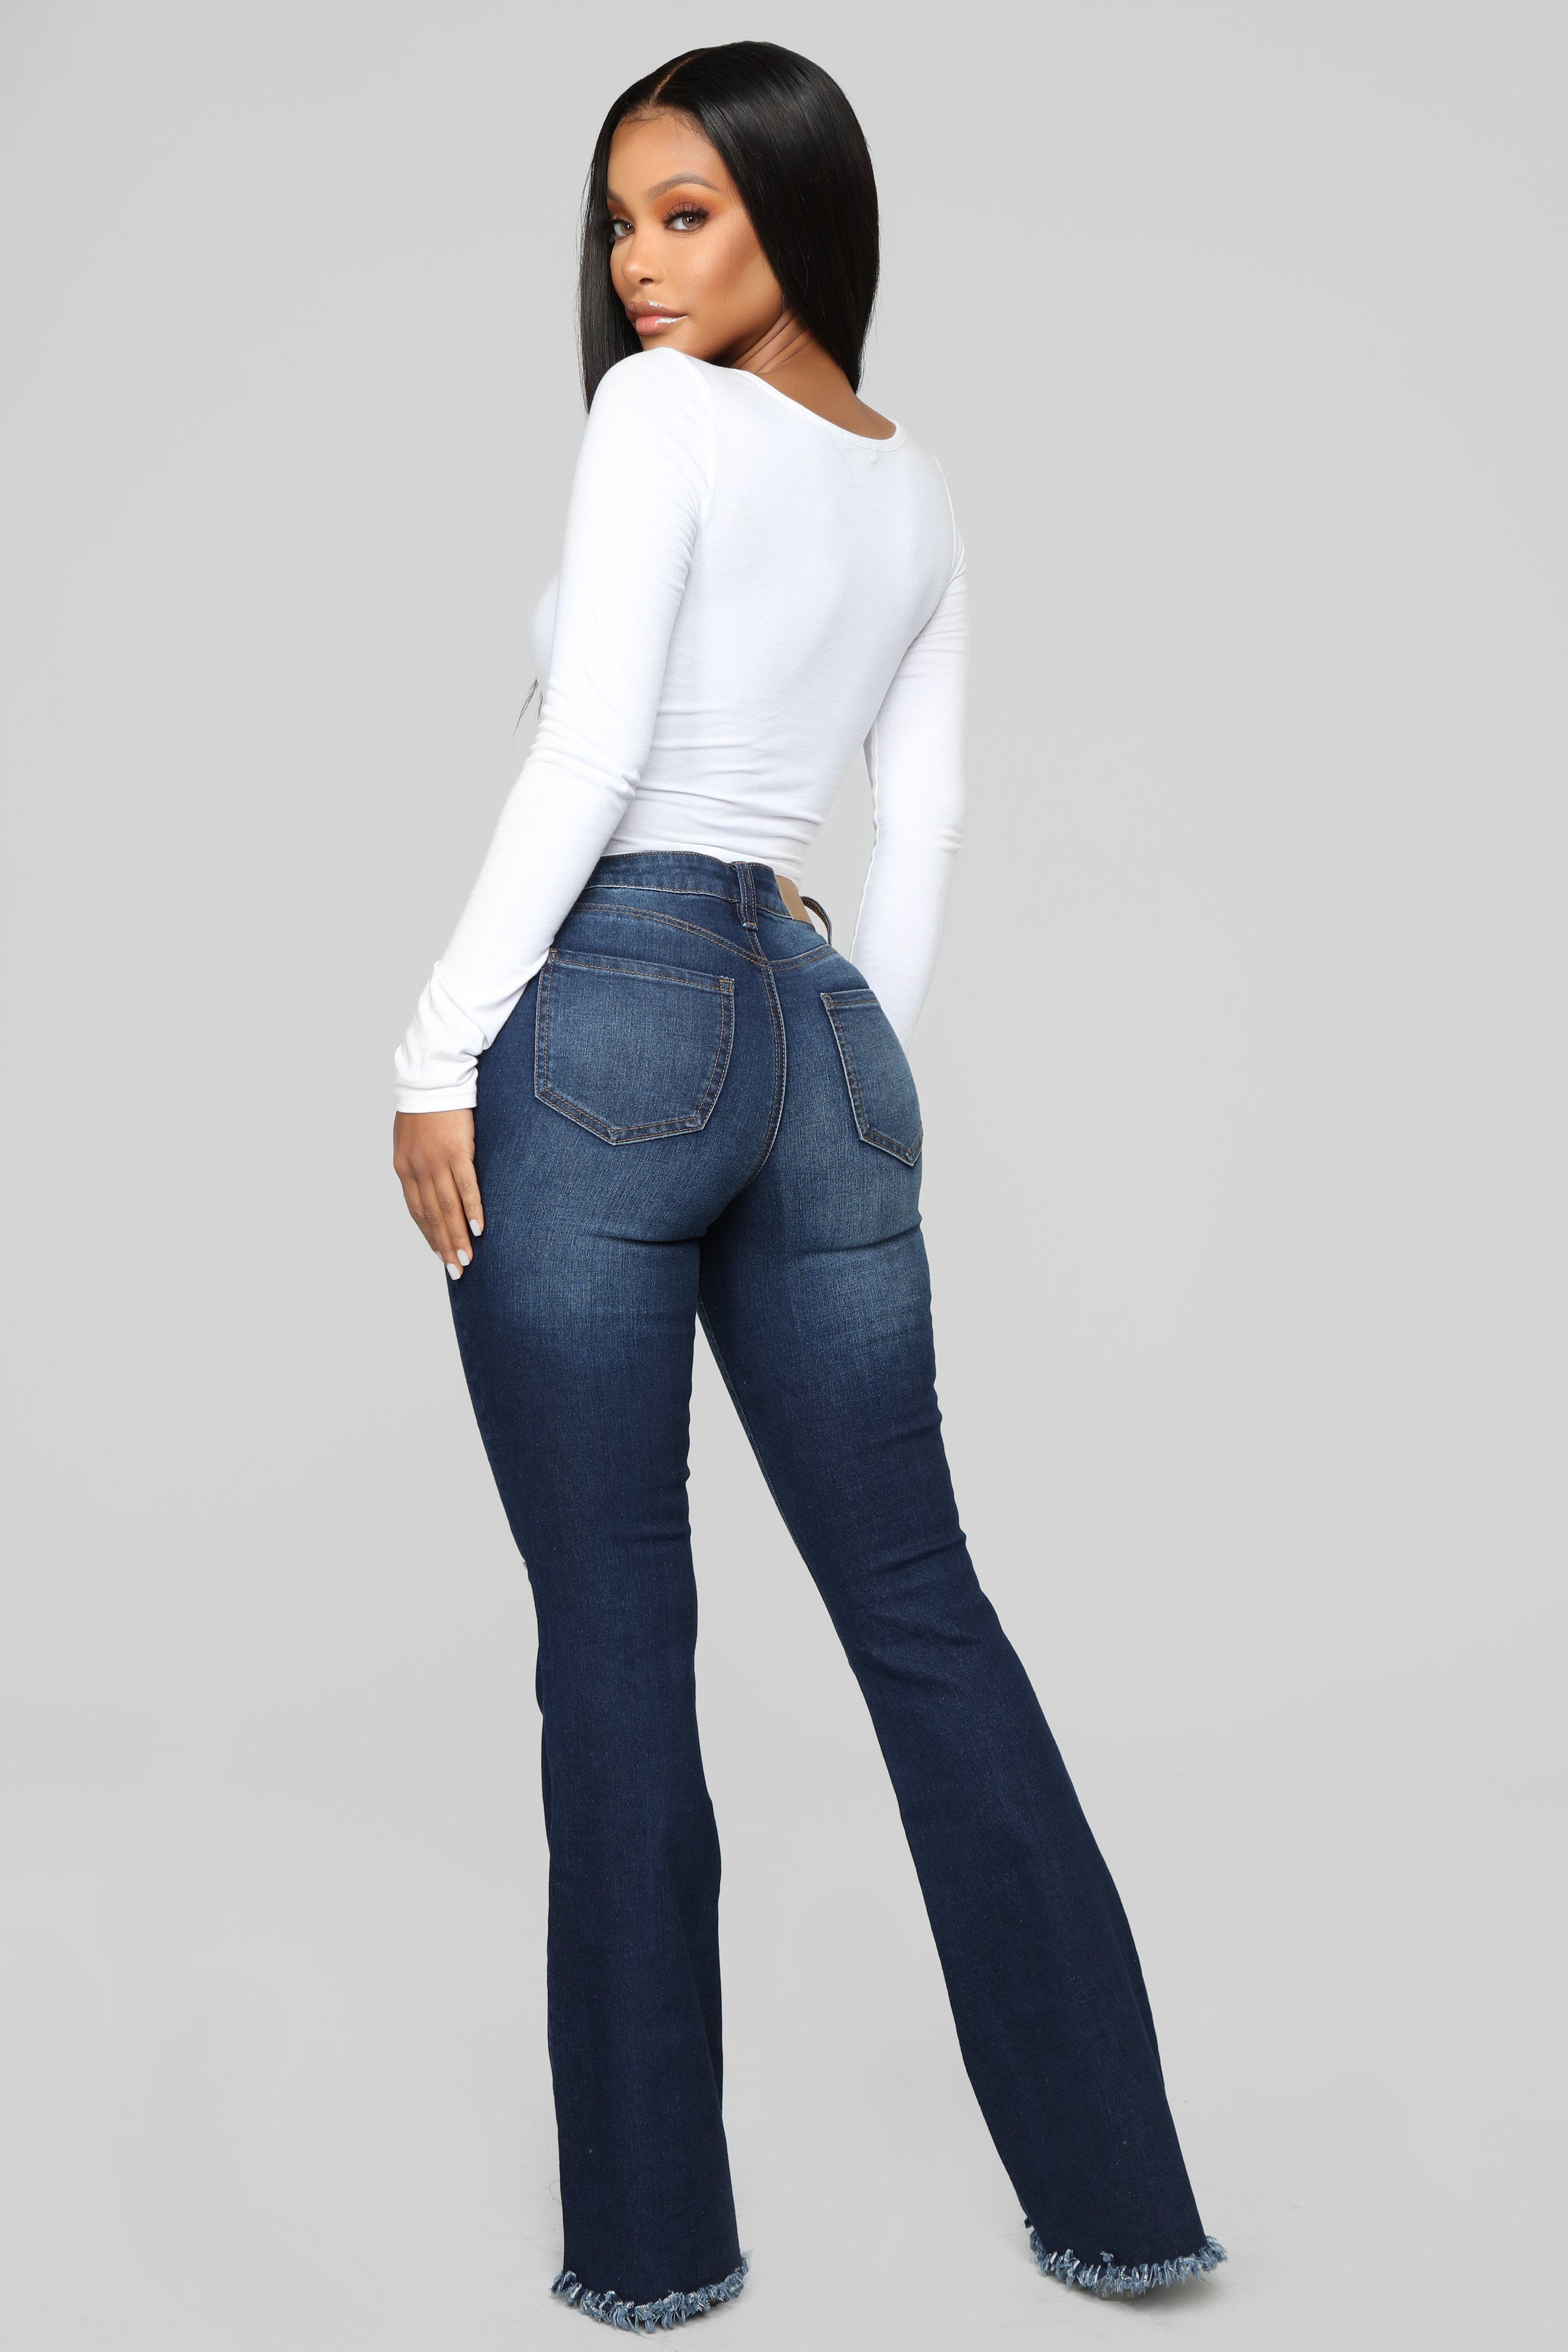 Pin by Flare Jean Fanatic on Fashion Nova - Flare Jeans ...